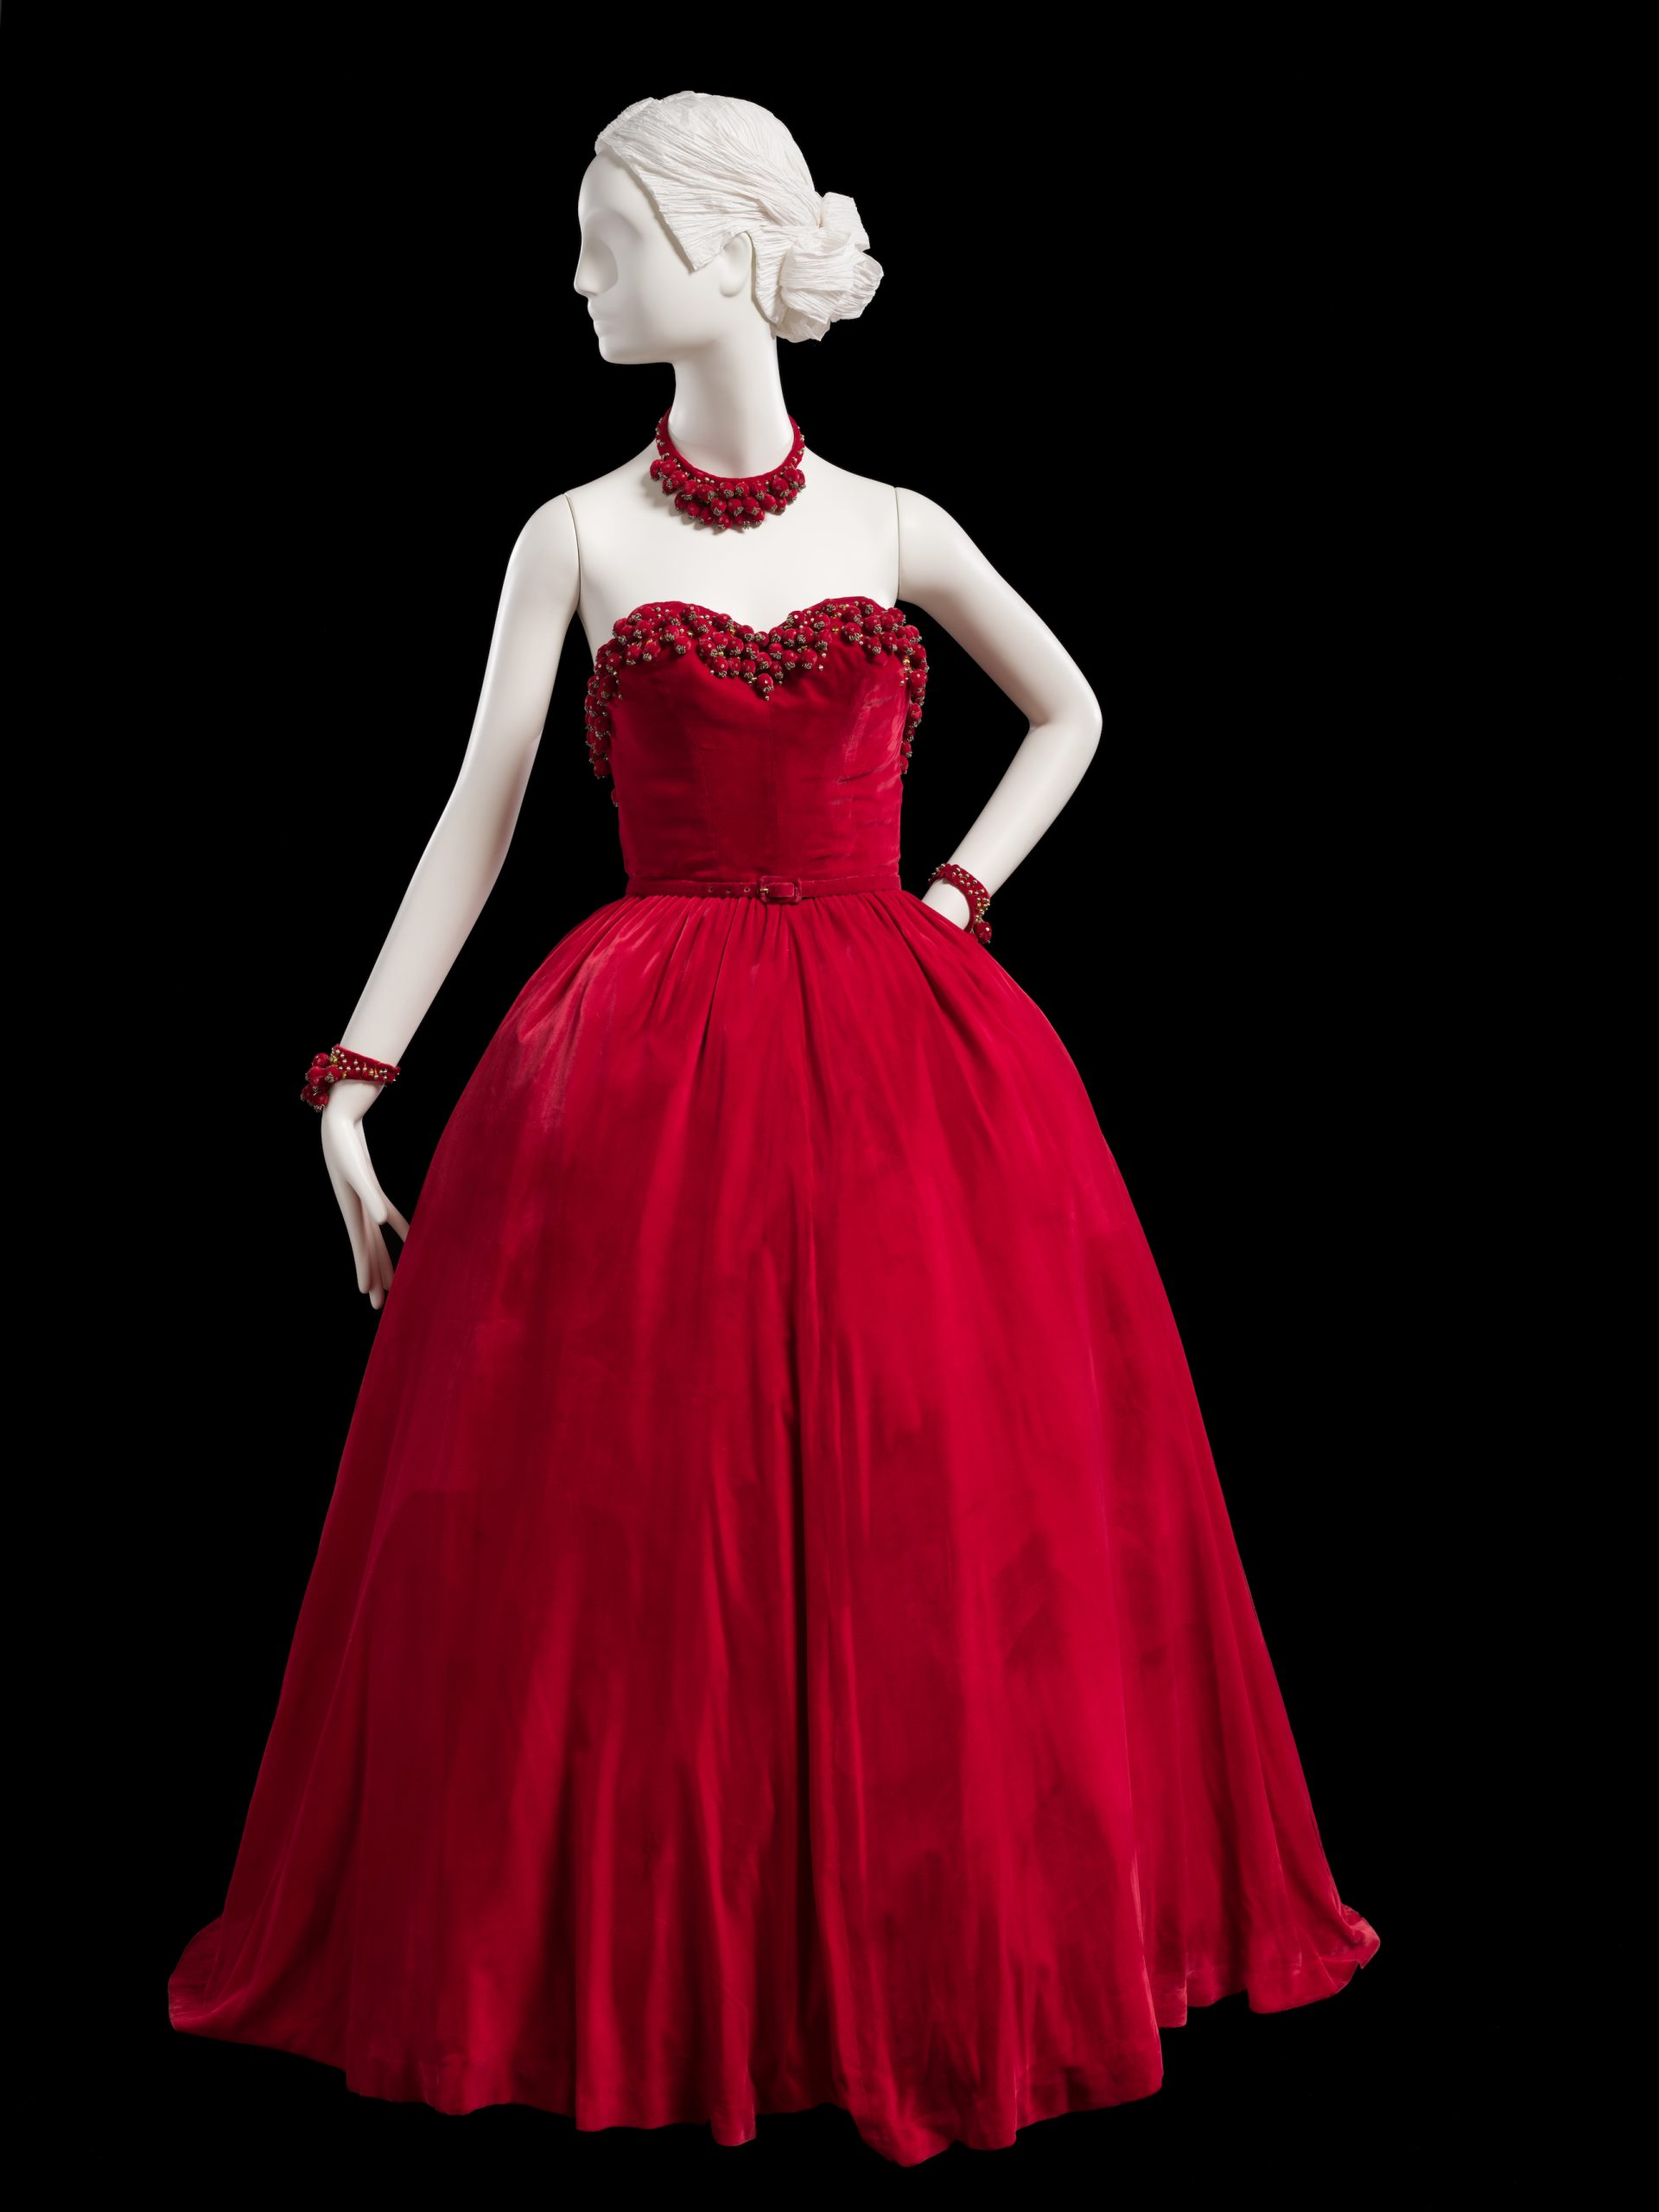 Red velvet ballgown with accessories, fall 1947